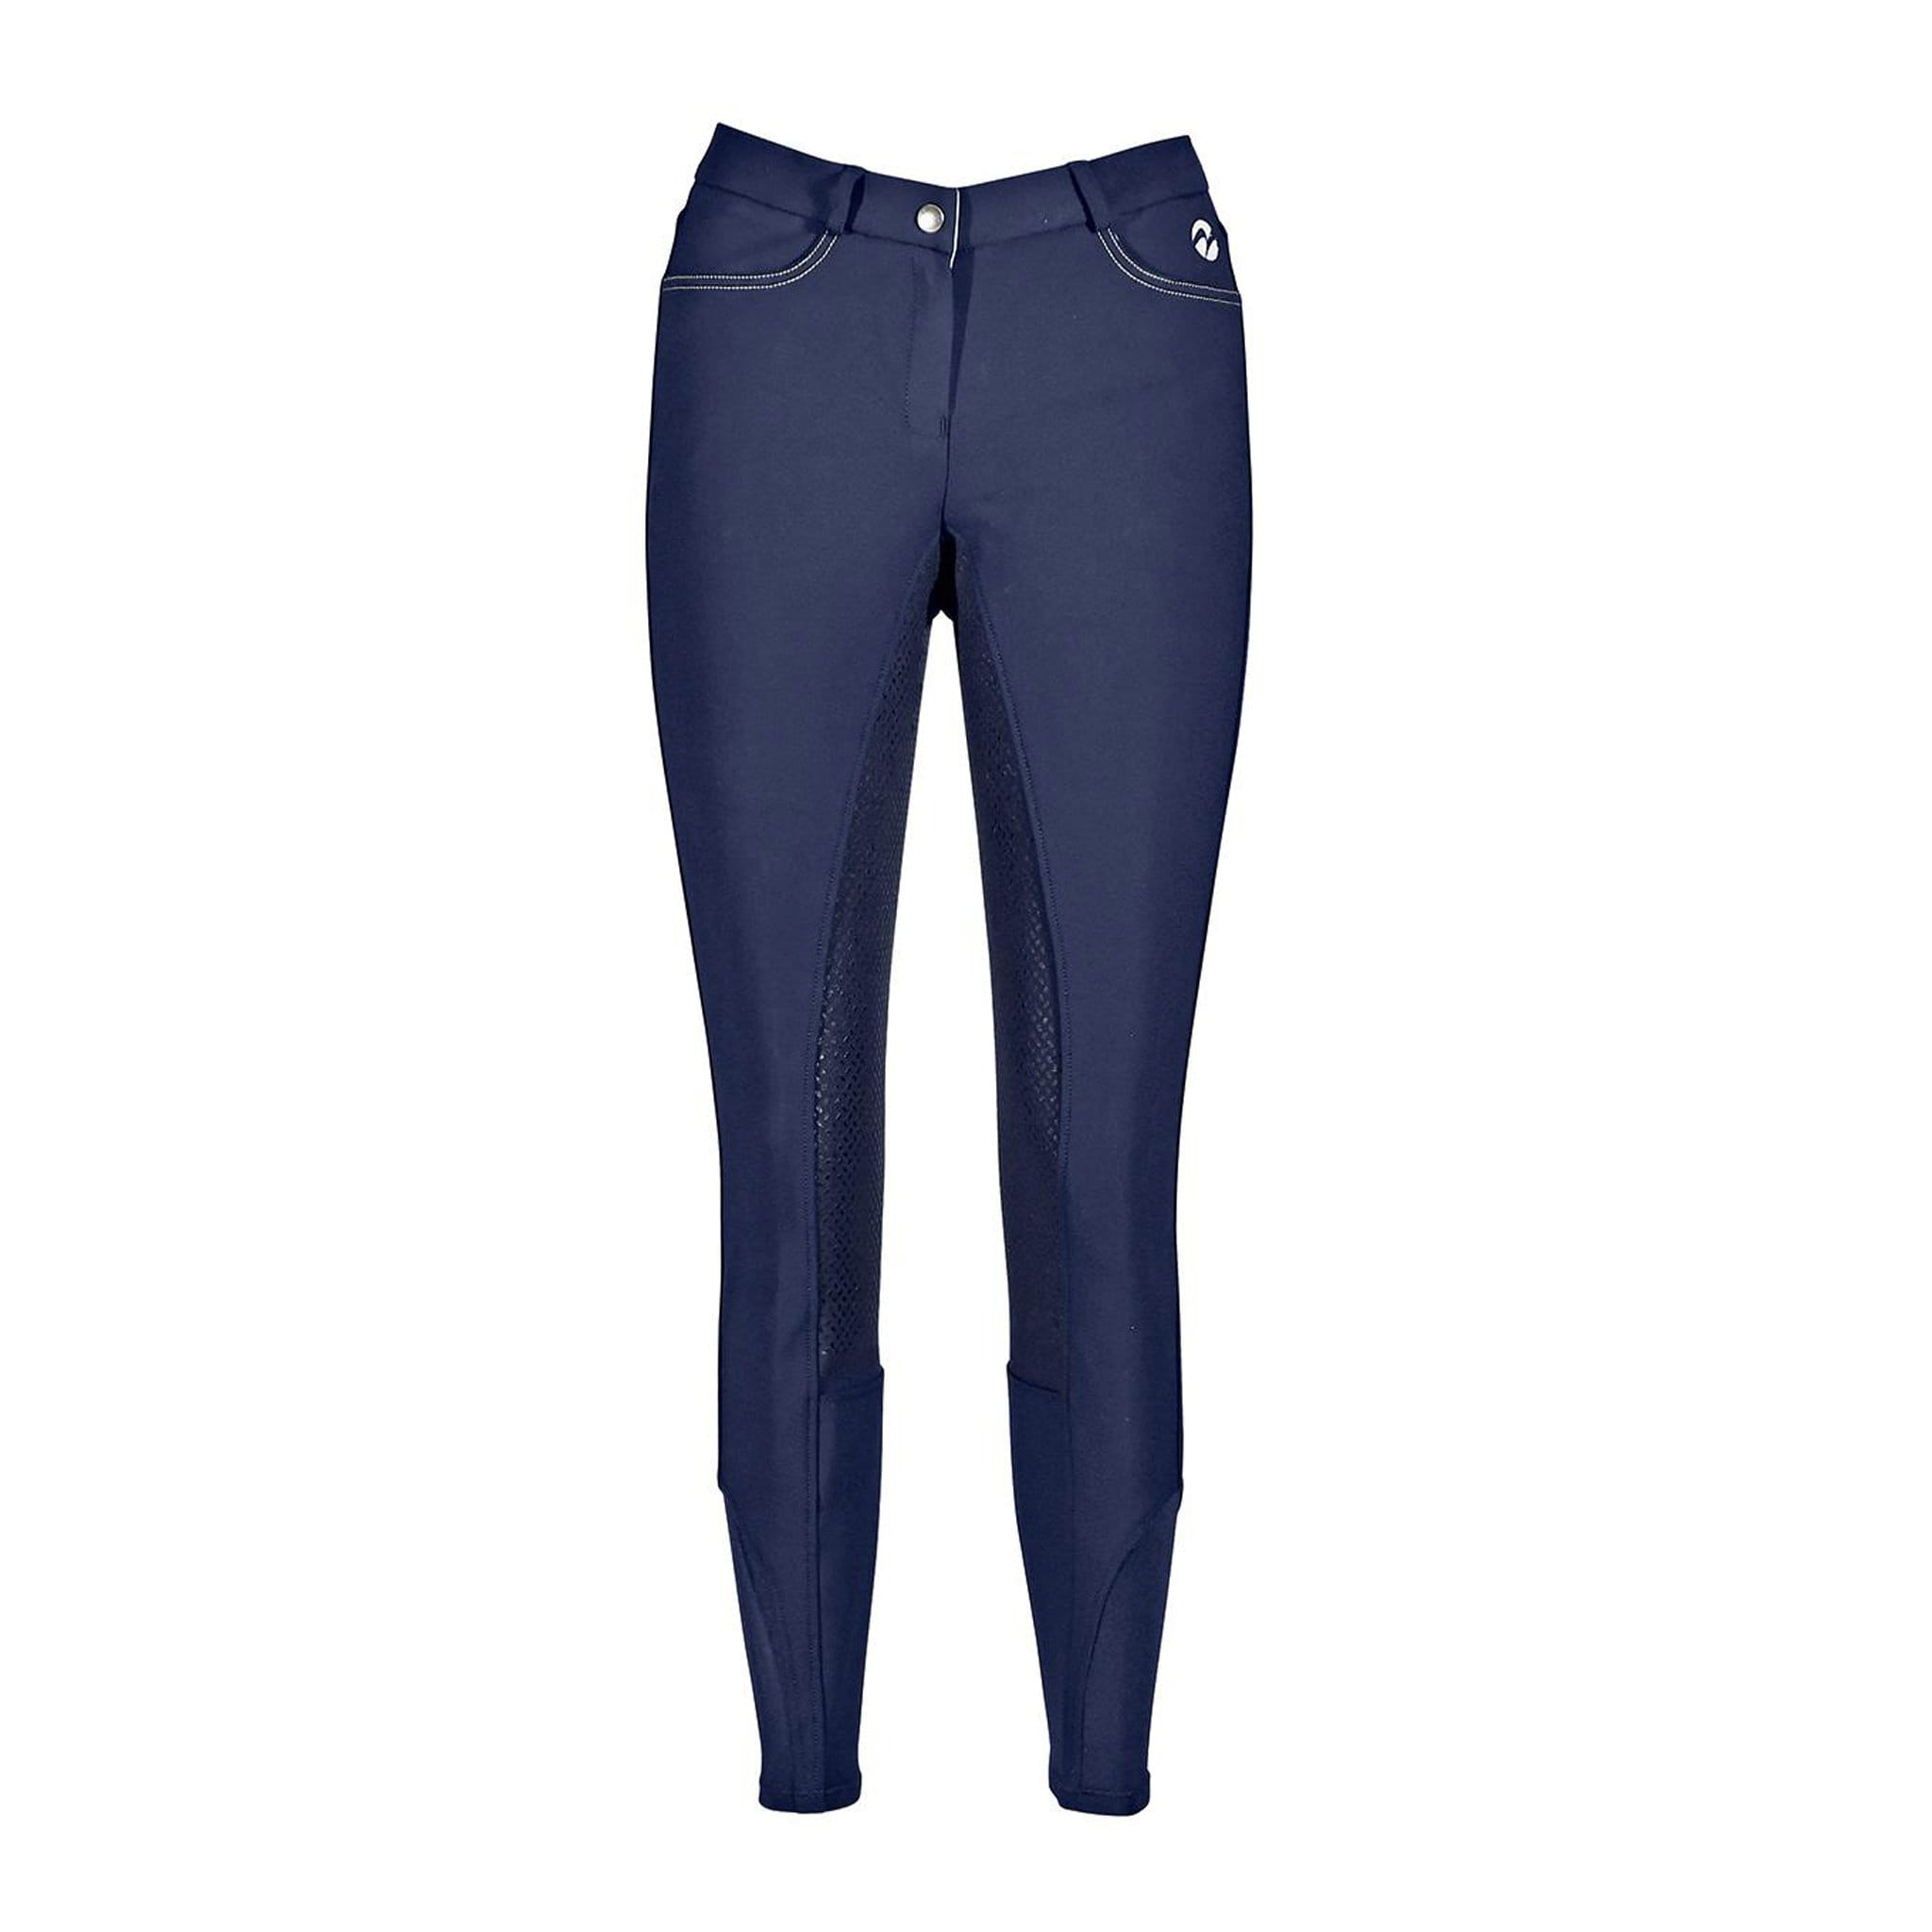 Busse Alicante Breeches Navy Studio Front View 710061